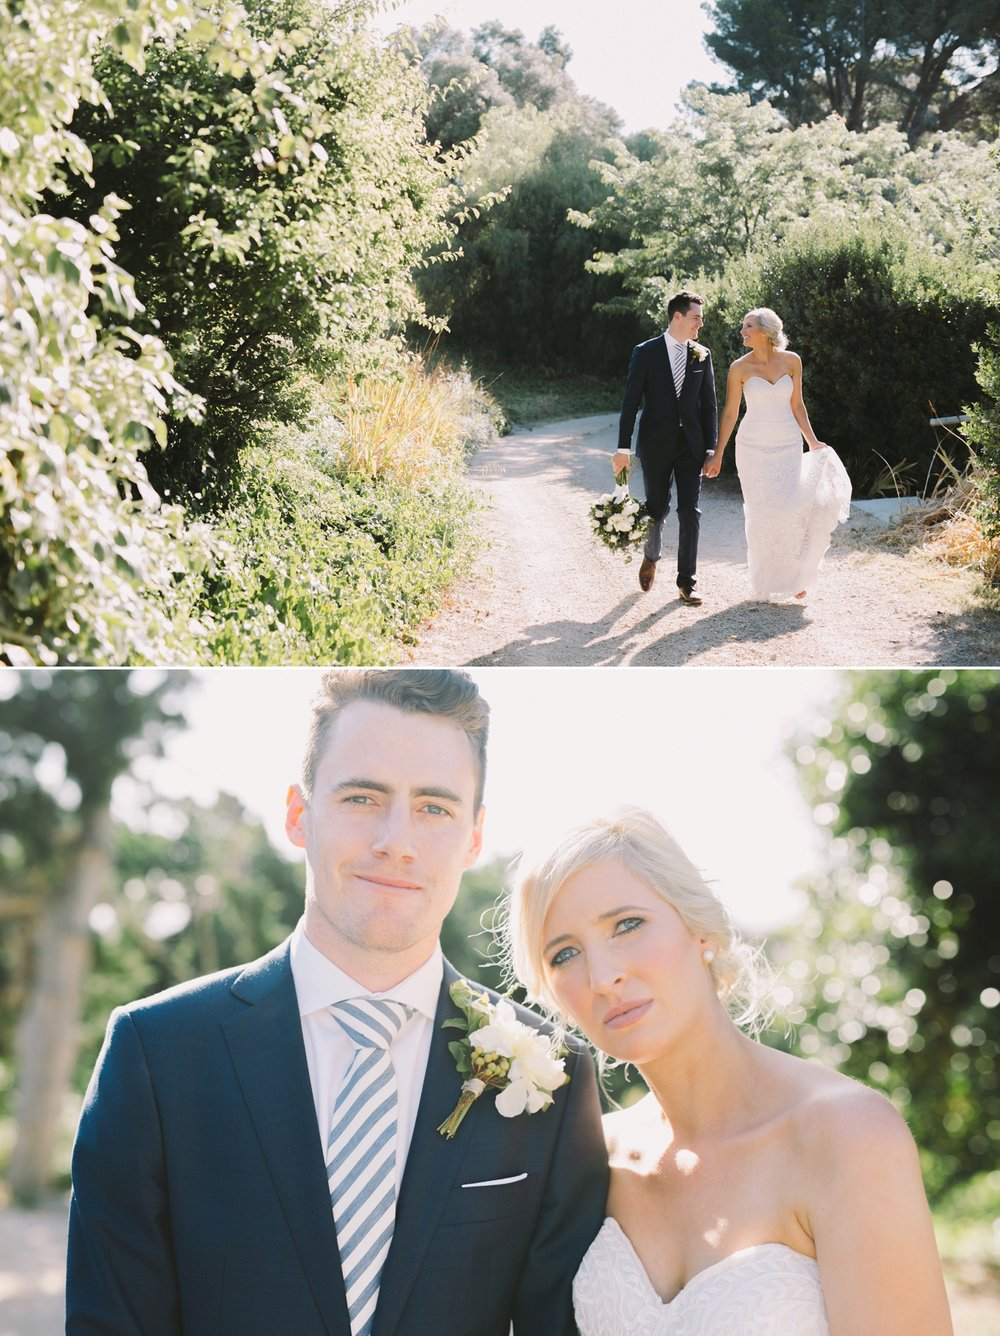 Lauren & Max - Marybank Estate Wedding - Natural wedding photographer in Adelaide - www.katherineschultzphotography.com 77